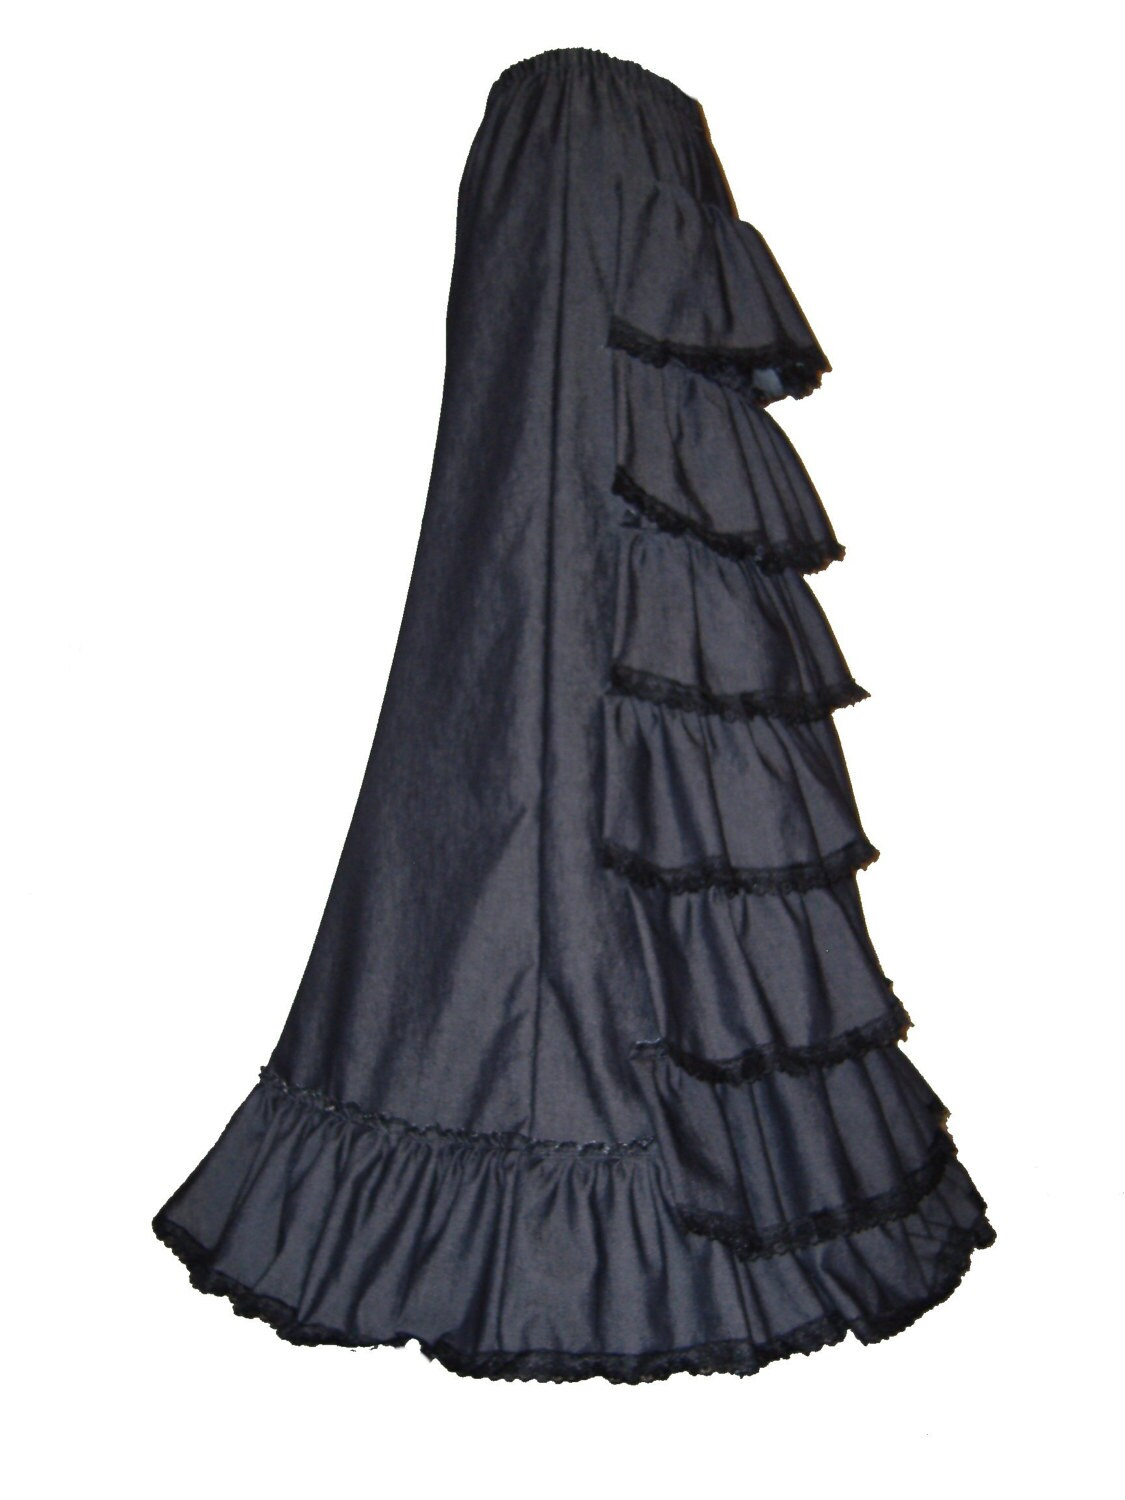 STEAMPUNK BUSTLE SKIRT victorian long gothic skirt steampunk full length skirt victorian dress 1900 costume made to order size 18  20